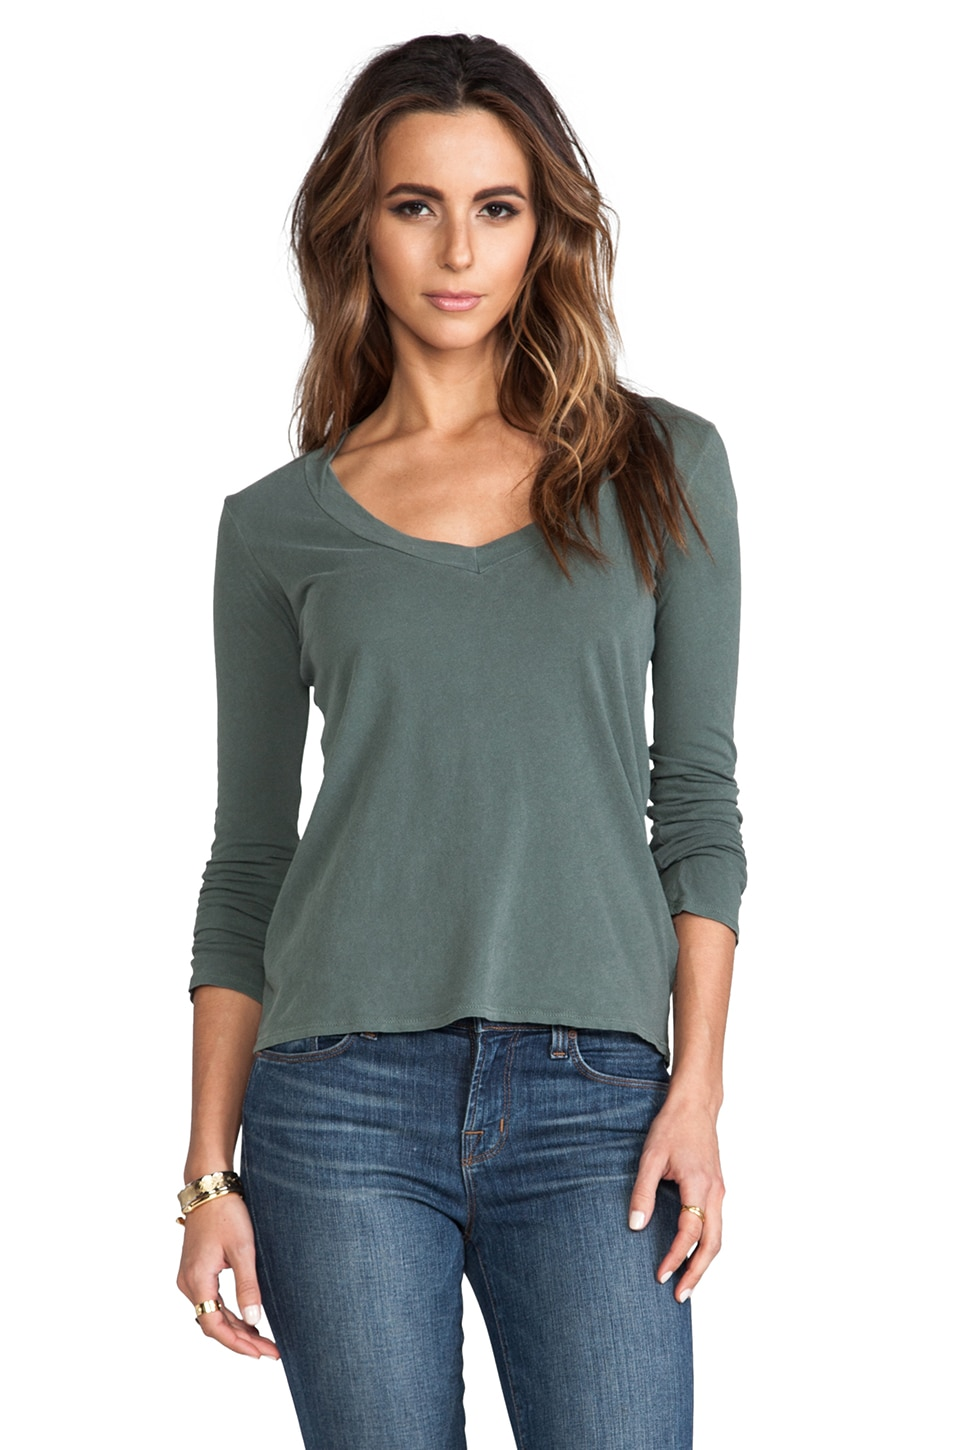 James Perse Long Sleeve V Neck in Forest Green